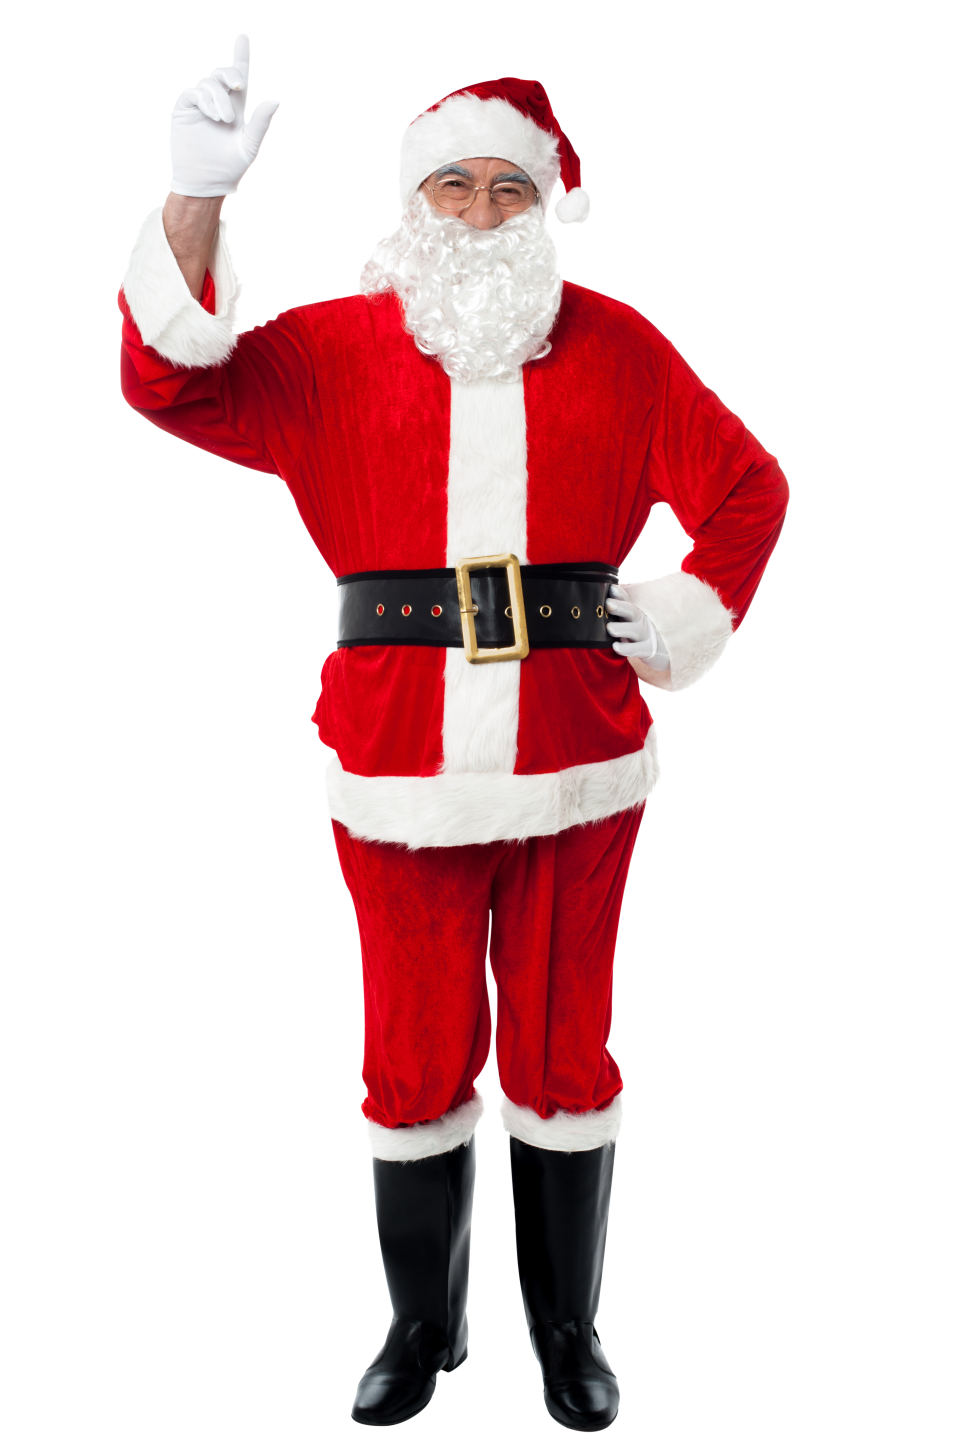 Santa Claus Holding Finger in The Air PNG Image